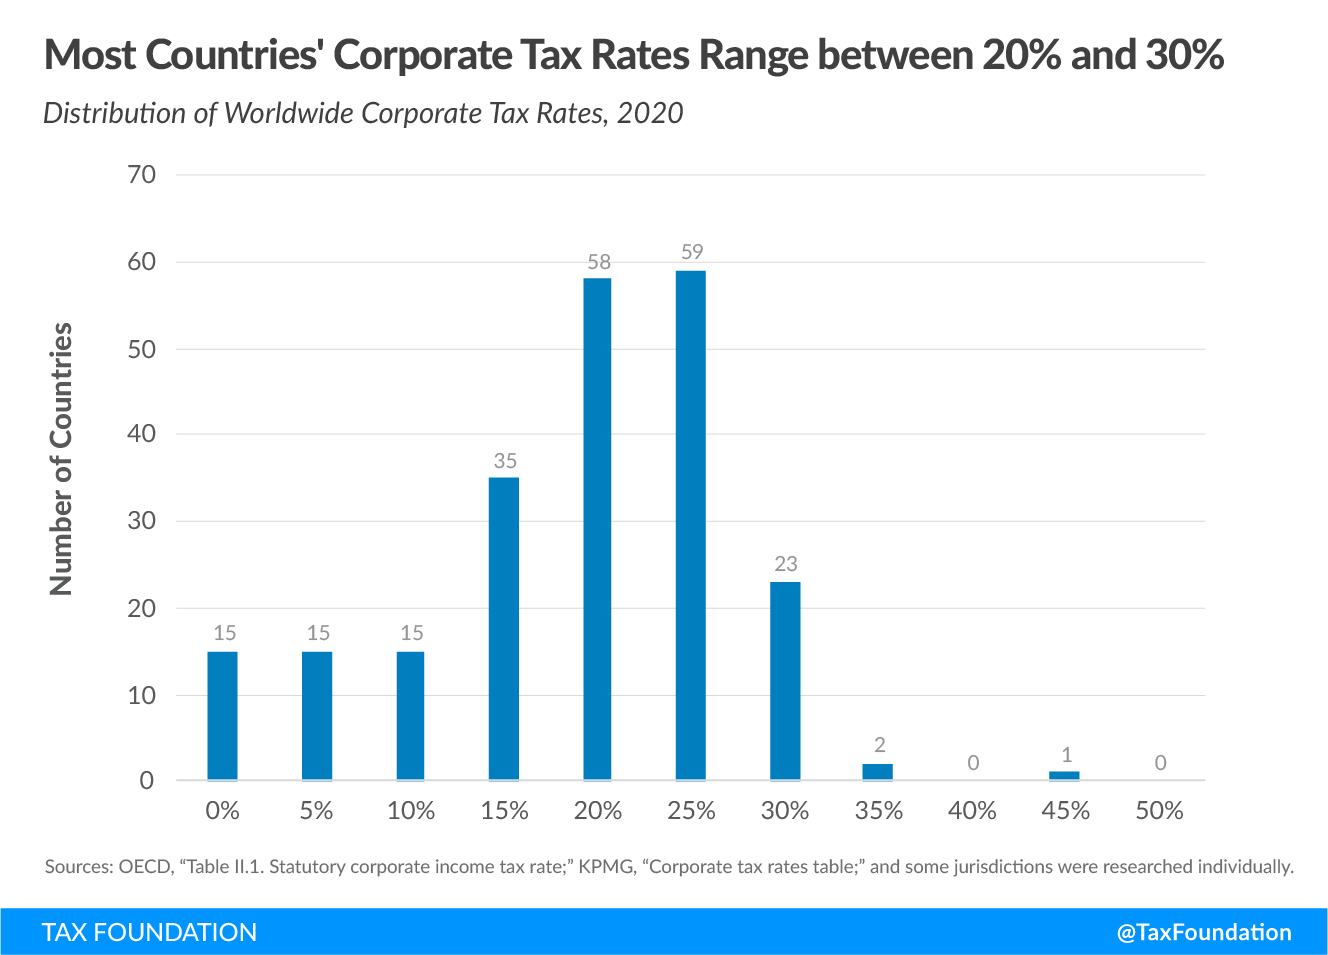 Most countries' corporate tax rates range between 20 percent and 30 percent. 2020 corporate tax rates around the world, 2020 corporate tax trends